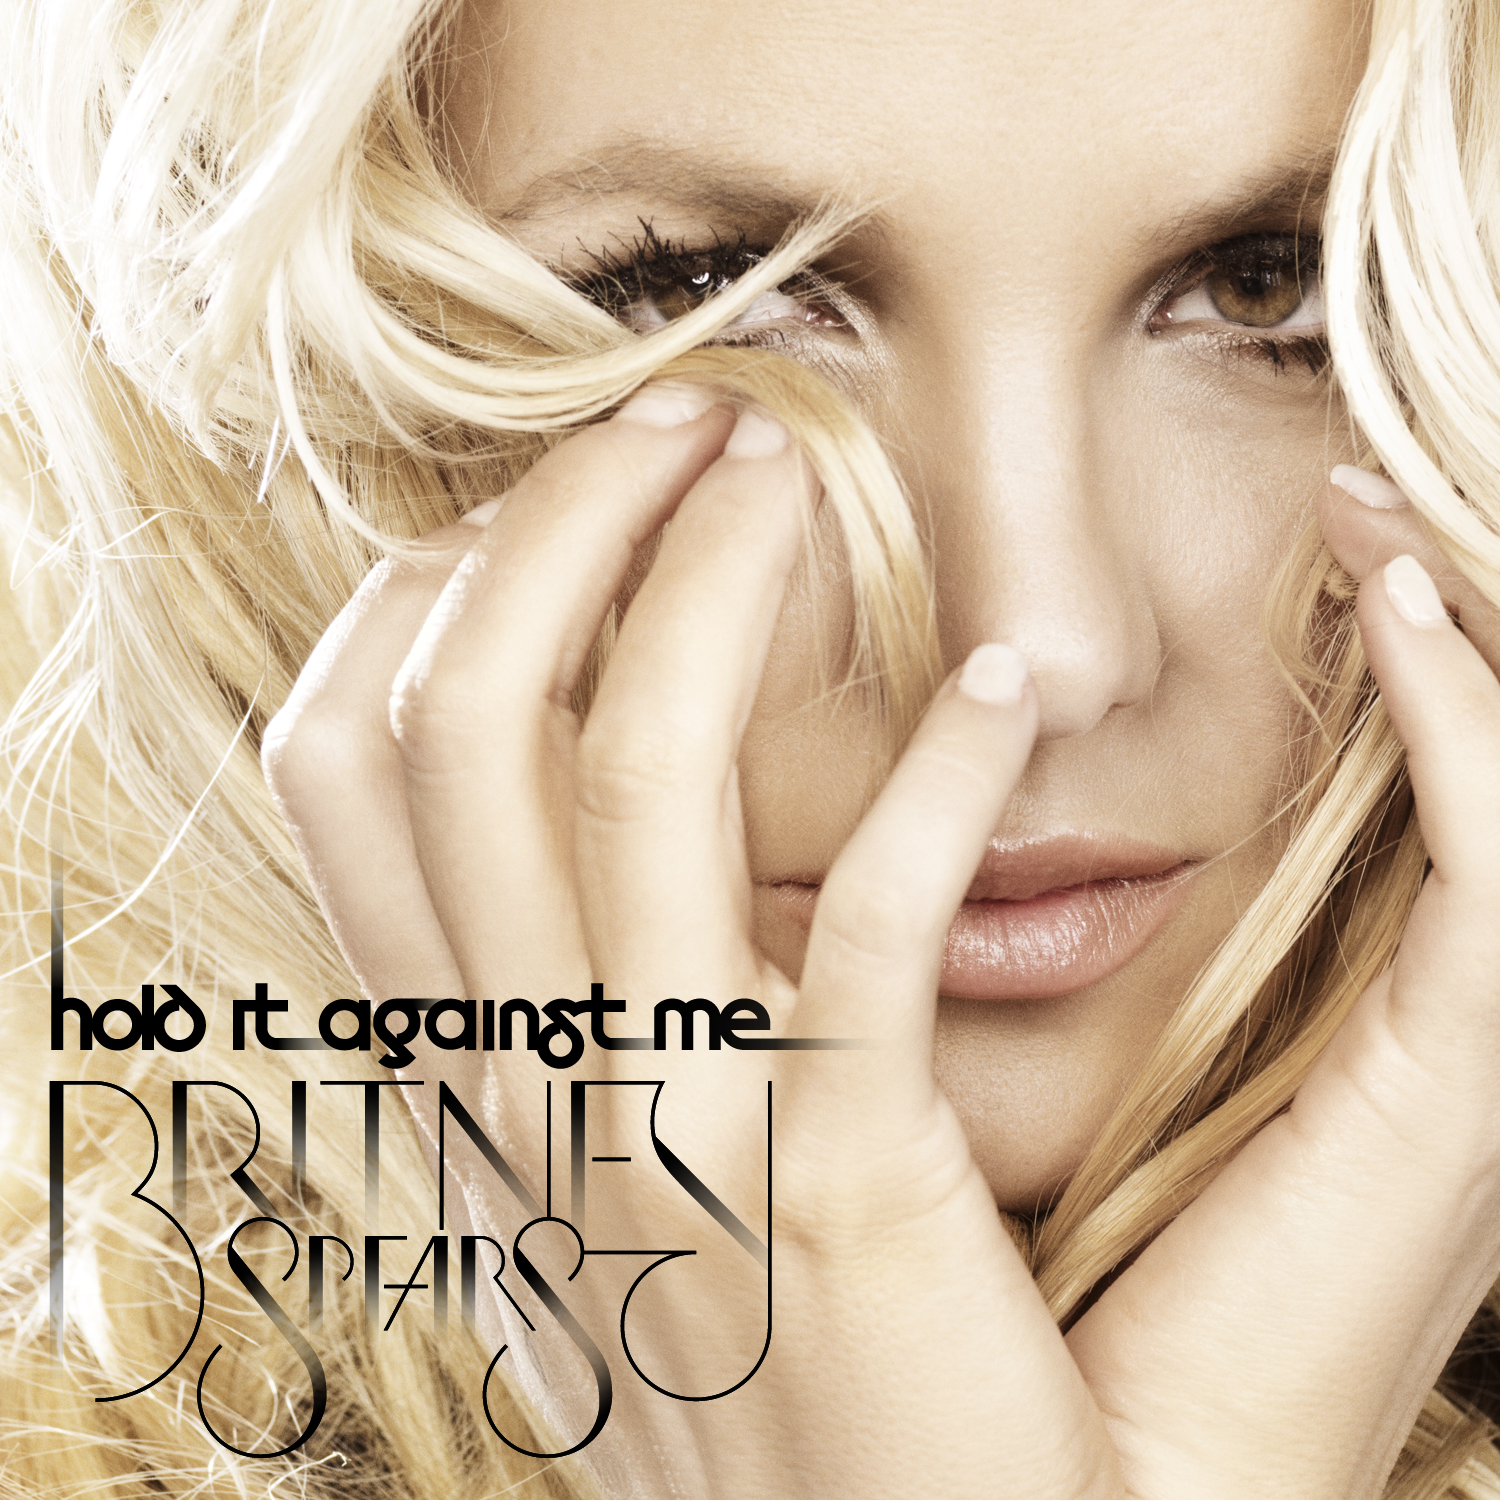 http://3.bp.blogspot.com/_X9FjjGb74Zw/TTC47tmJzgI/AAAAAAAAAZ0/lhXWqkhzBx0/s1600/Britney-Spears-Hold-It-Against-Me-Official-Single-Cover.jpg